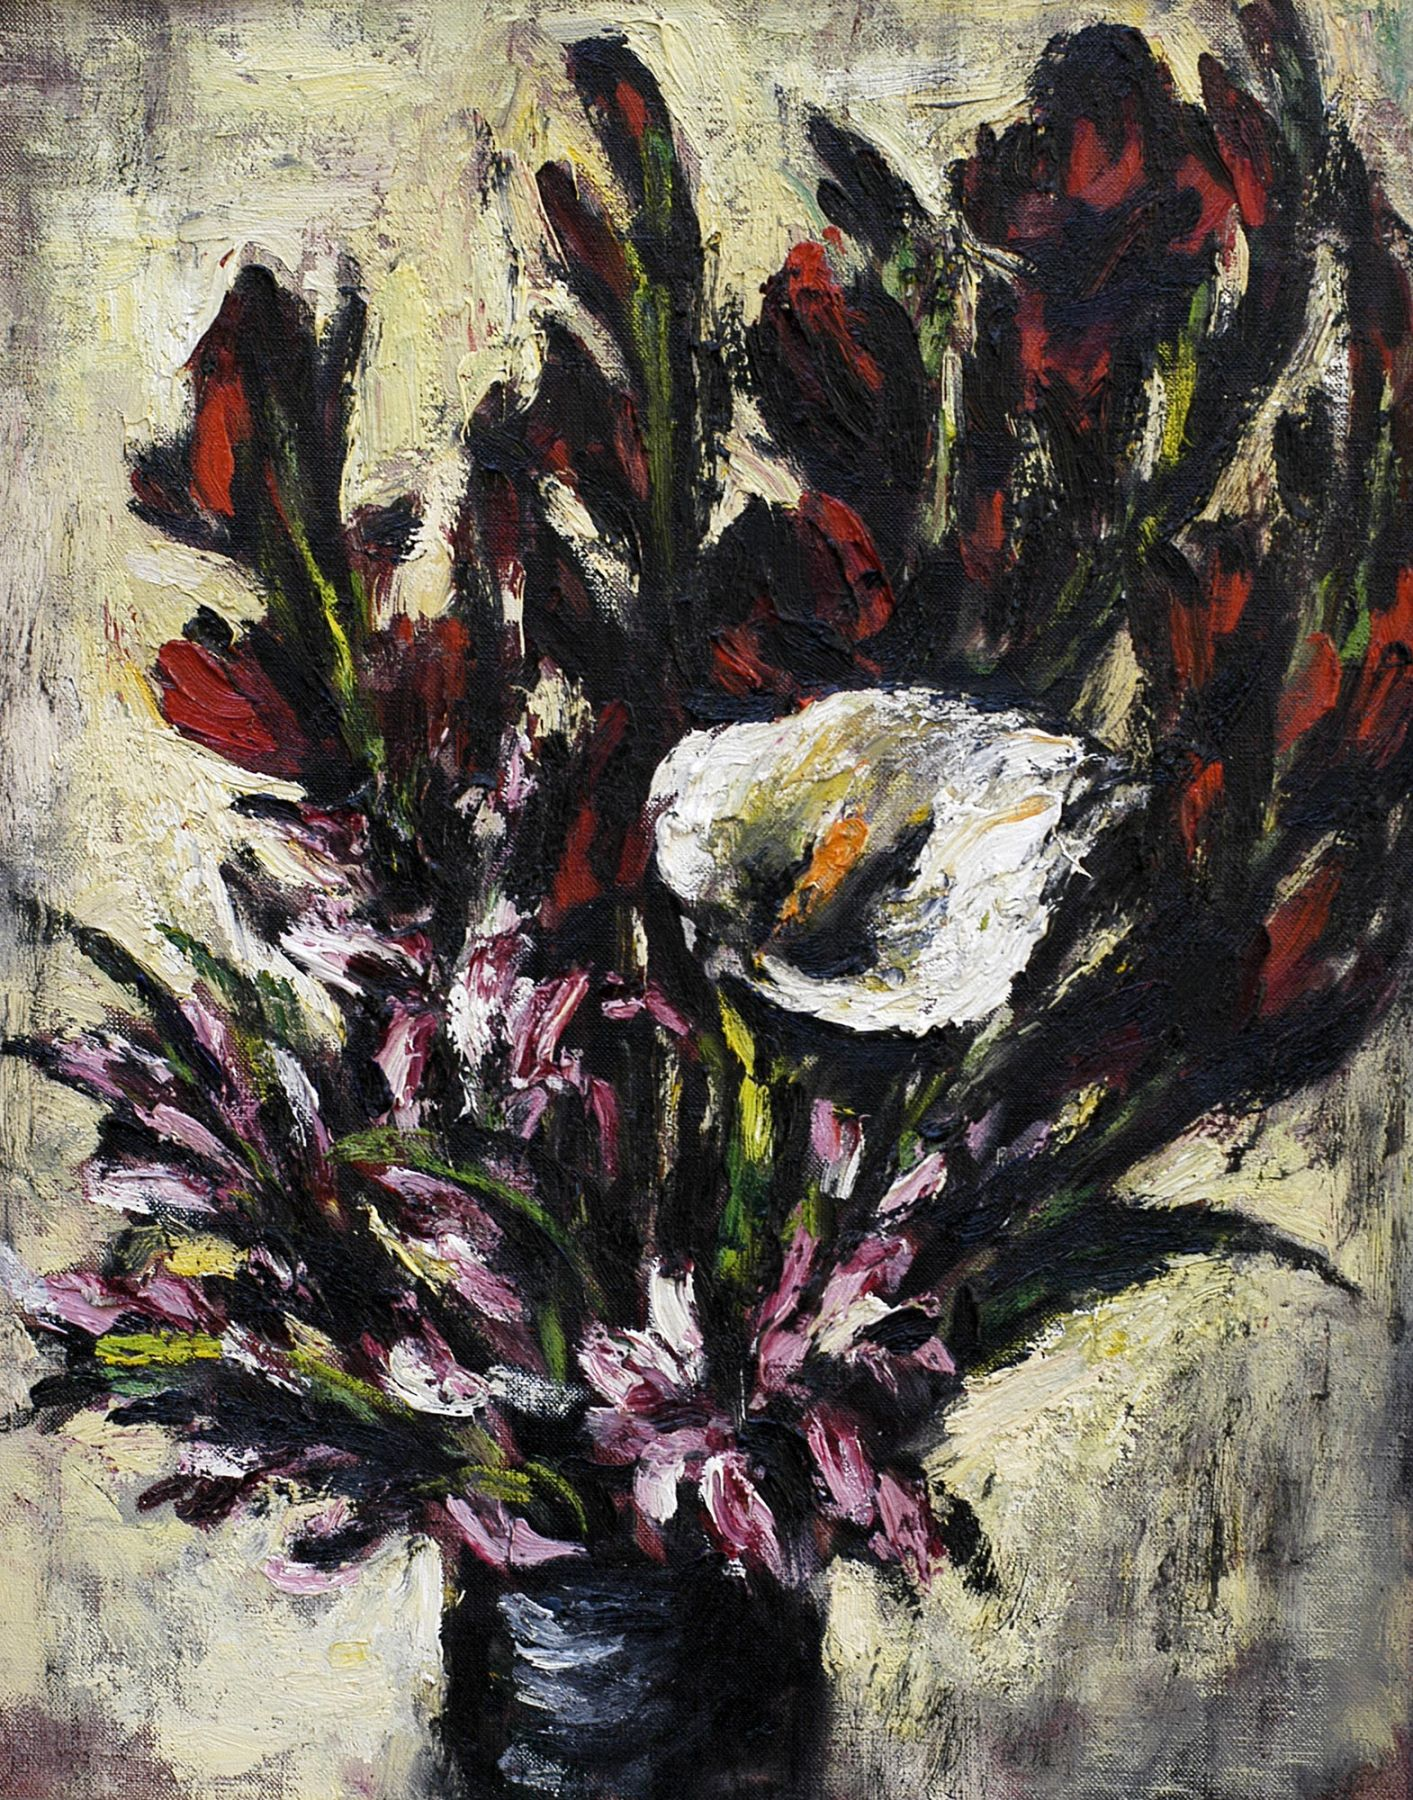 DAN LUTZ (1906-1978), Lily with Red Glads, 1954